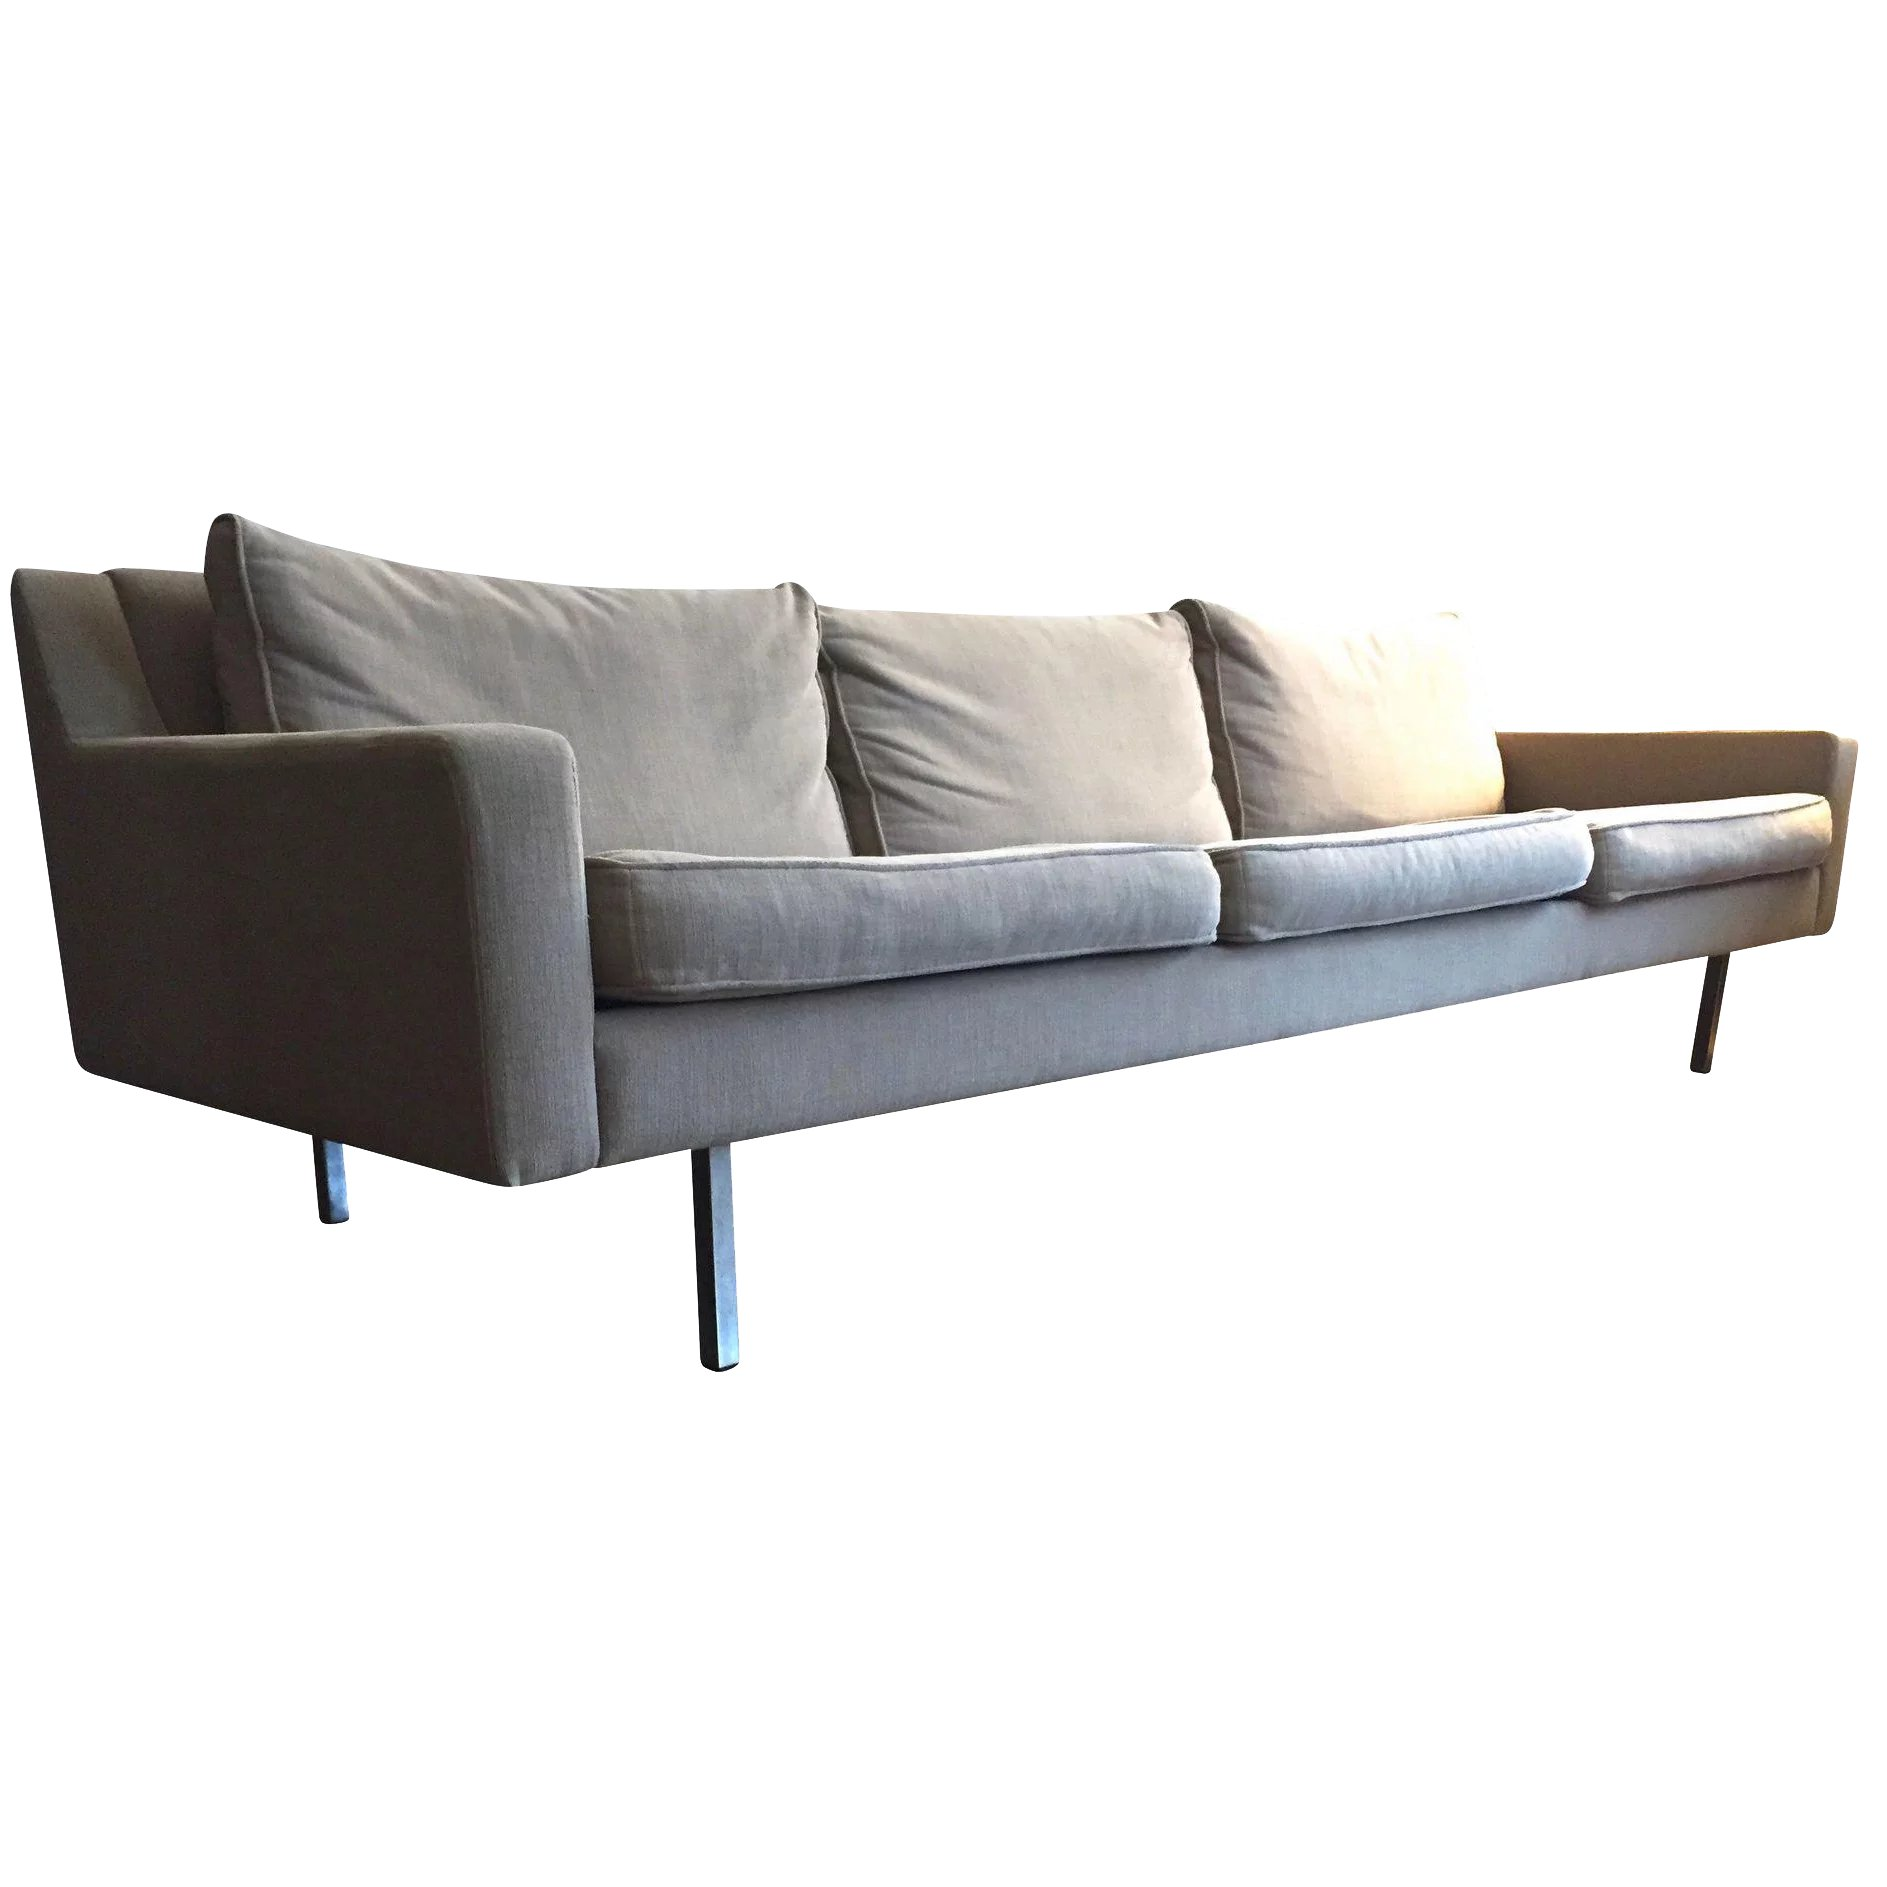 Edward Wormley Sofa, Ljungs Industrier/DUX, 1960u0027s